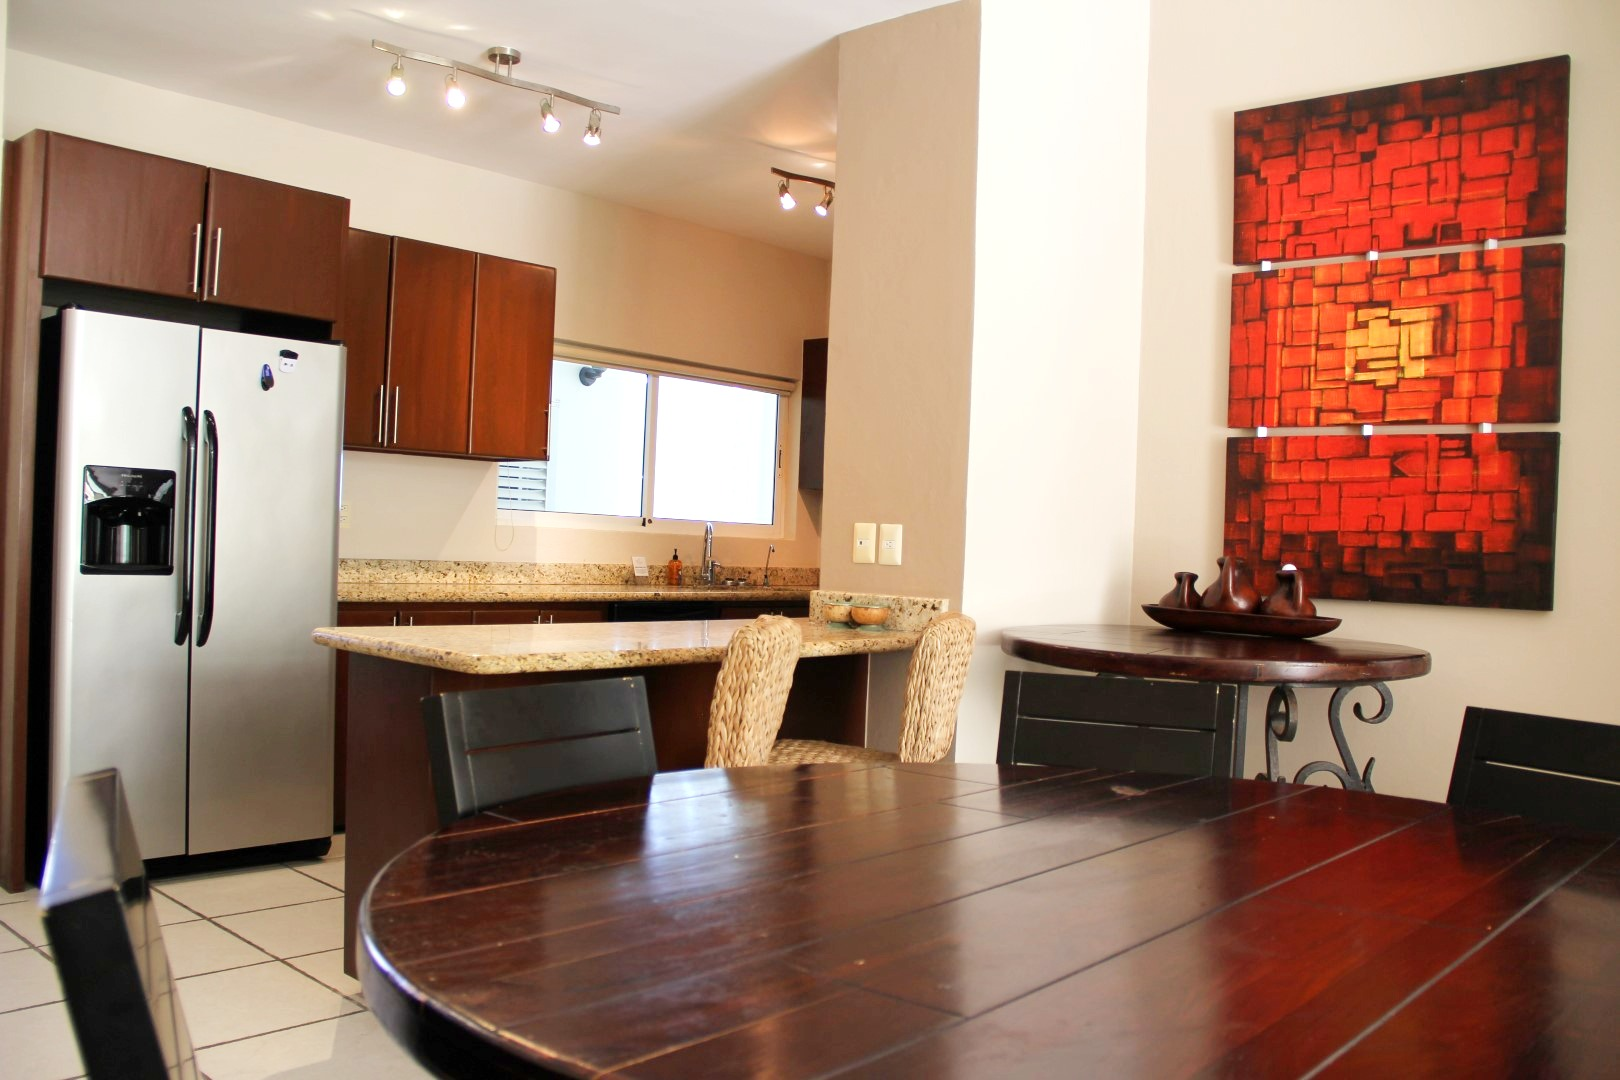 Open kitchen and dining areas.